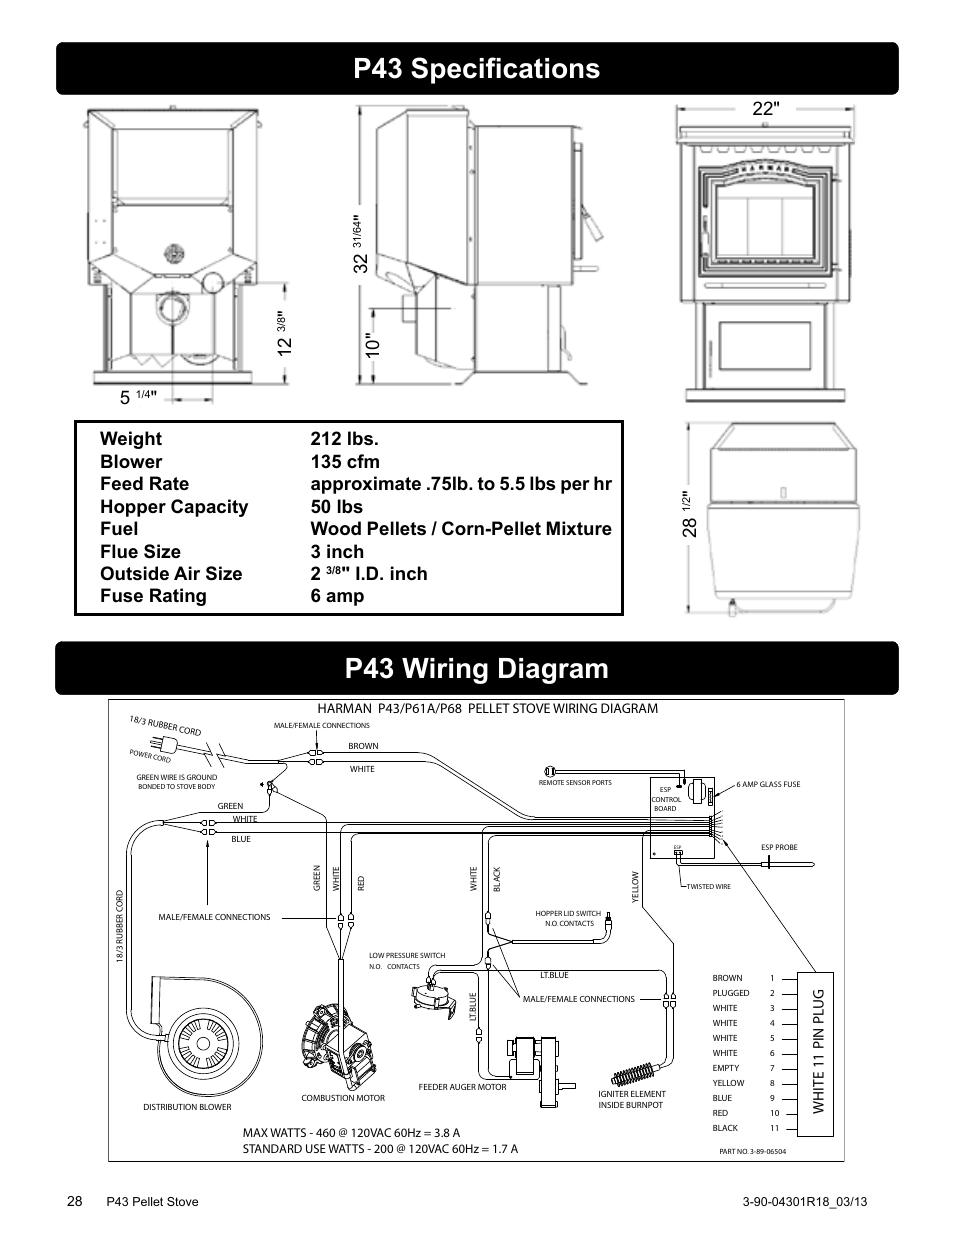 p43 specifications p43 wiring diagram i d inch fuse rating 6 harman stove company